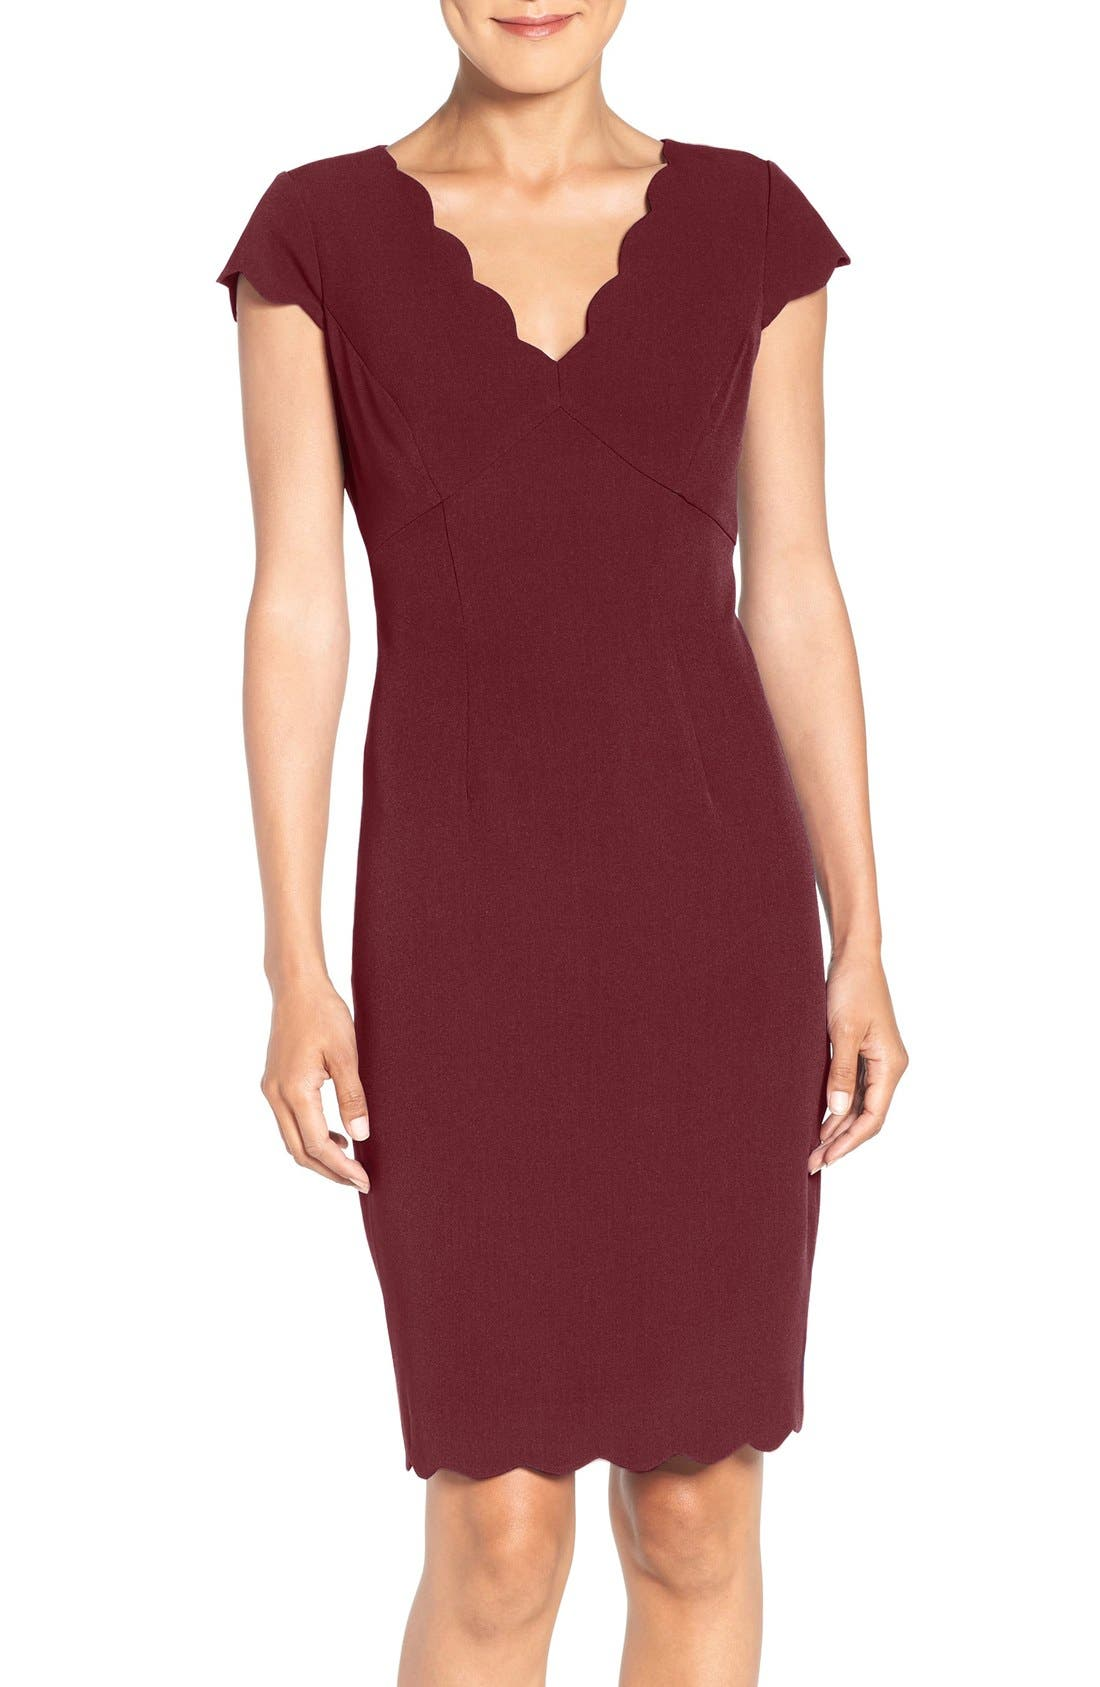 Adrianna Papell Scalloped Crepe Sheath Dress (Regular & Petite)